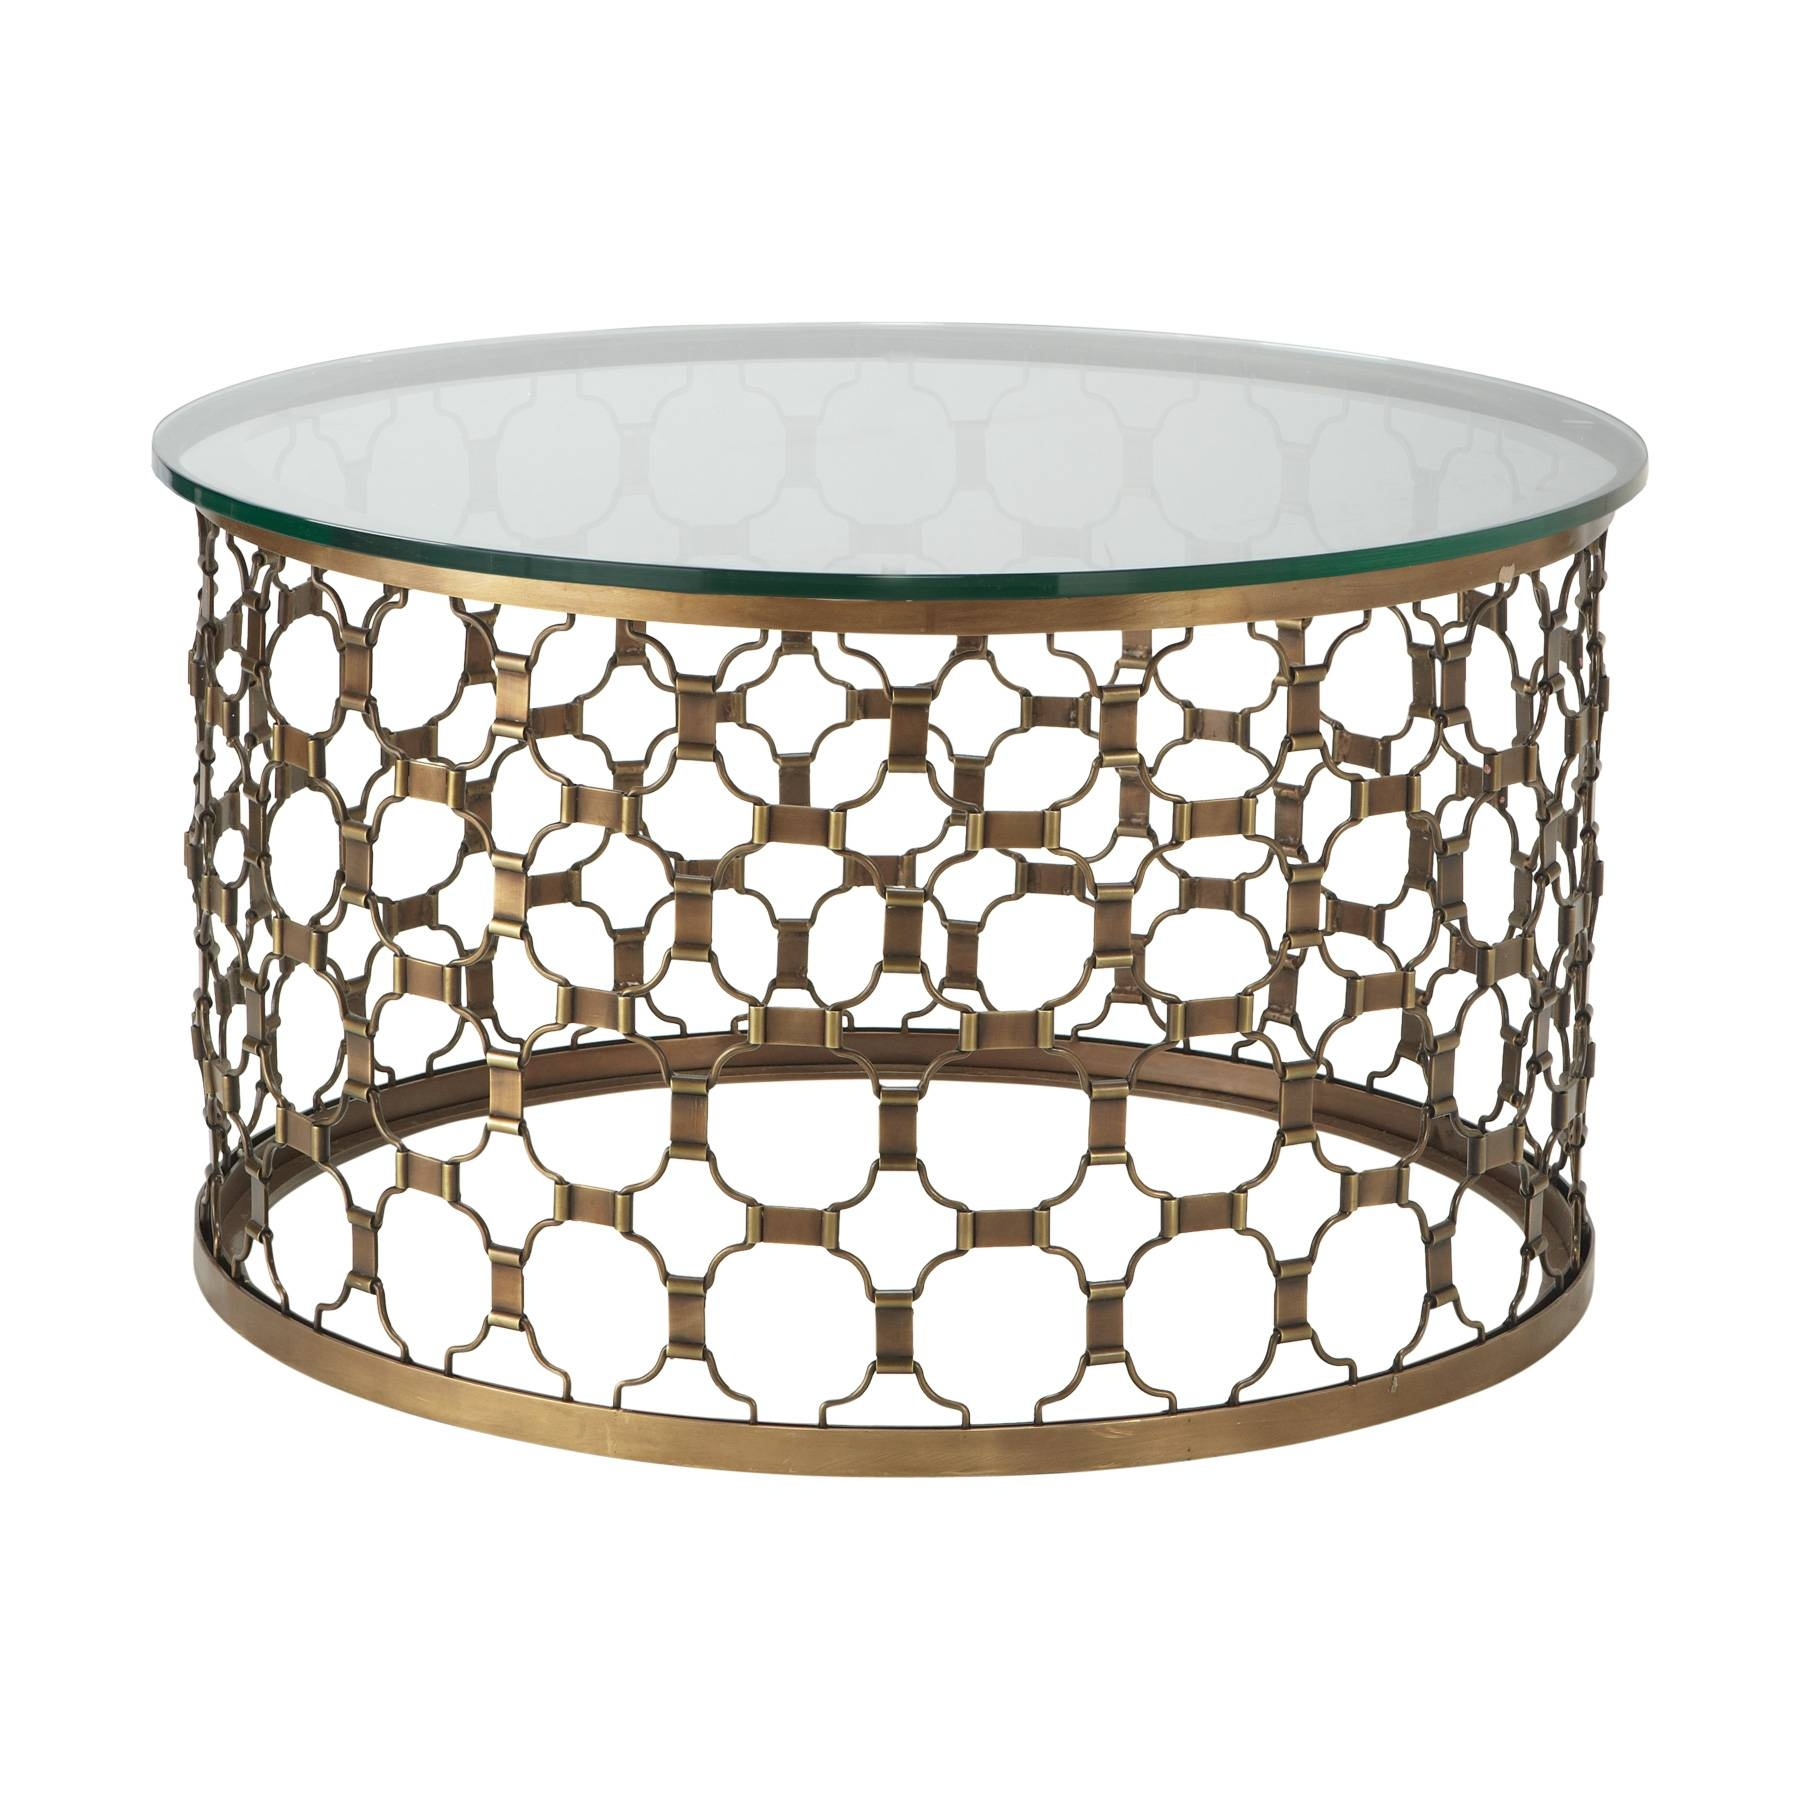 Gold Base Glass Top Coffee Table | Coffee Tables Decoration within Antique Glass Top Coffee Tables (Image 25 of 30)